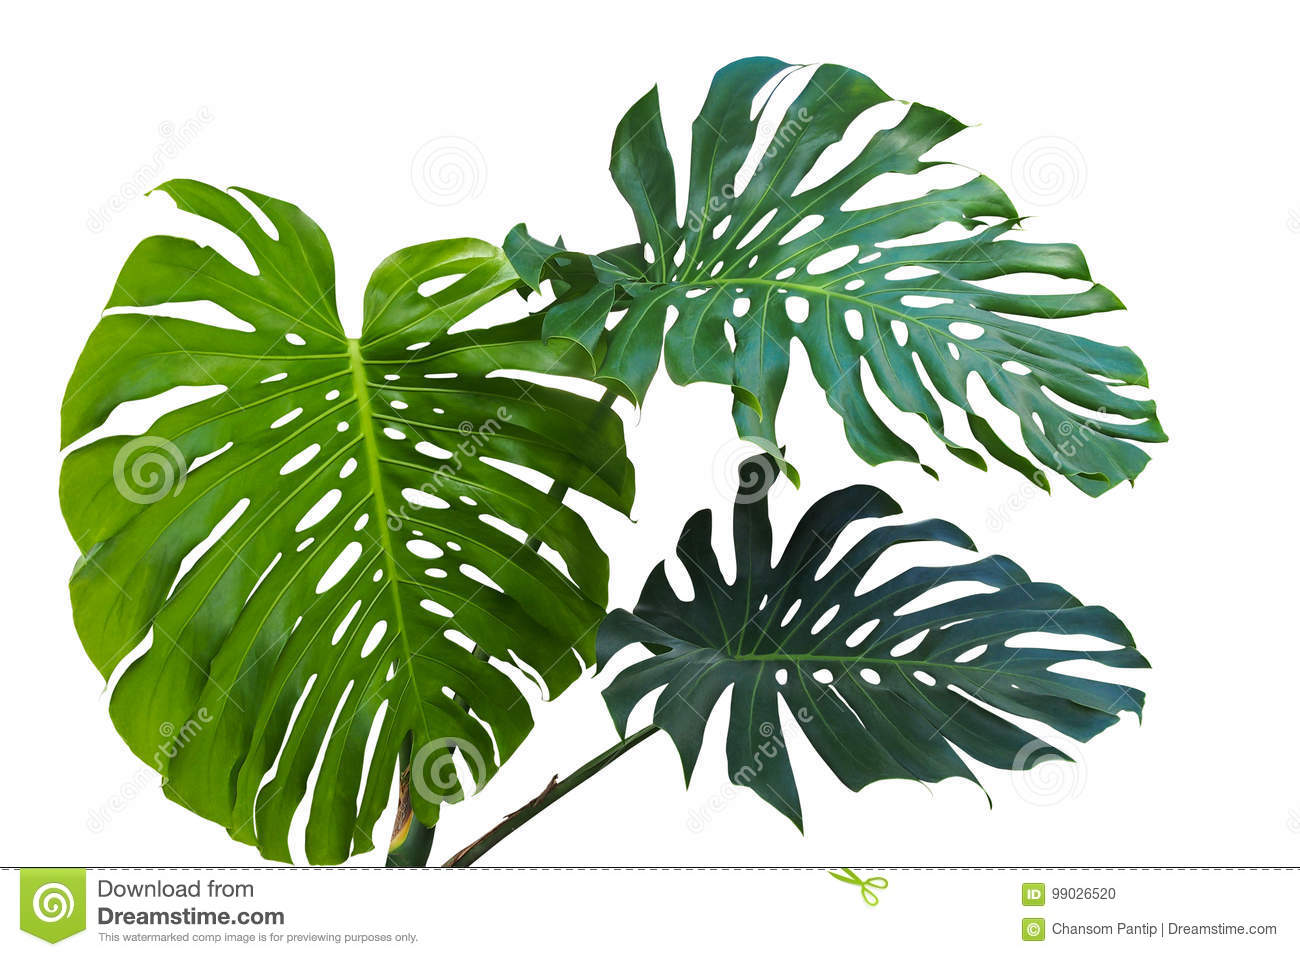 grandes feuilles vertes de philodendron monst de monstera ou de fente feuille photo stock. Black Bedroom Furniture Sets. Home Design Ideas